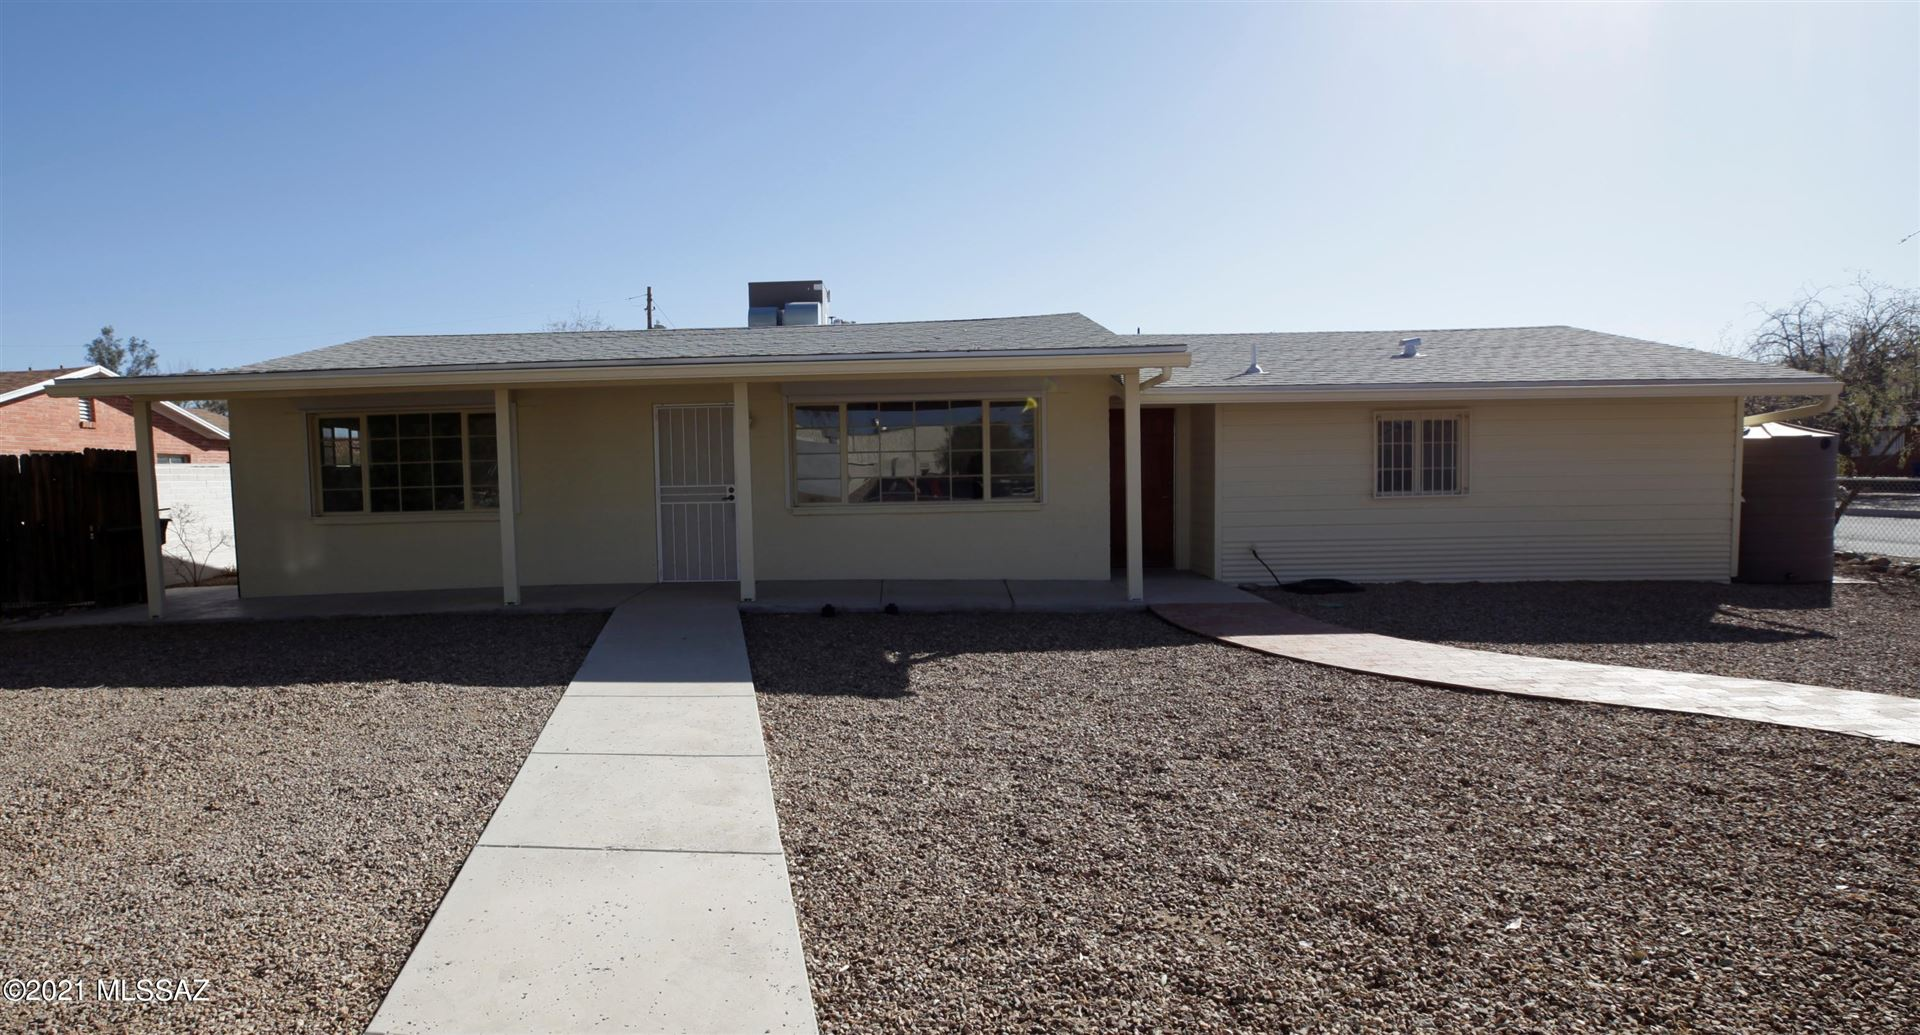 355 S Irving Avenue, Tucson, AZ 85711 - MLS#: 22104316